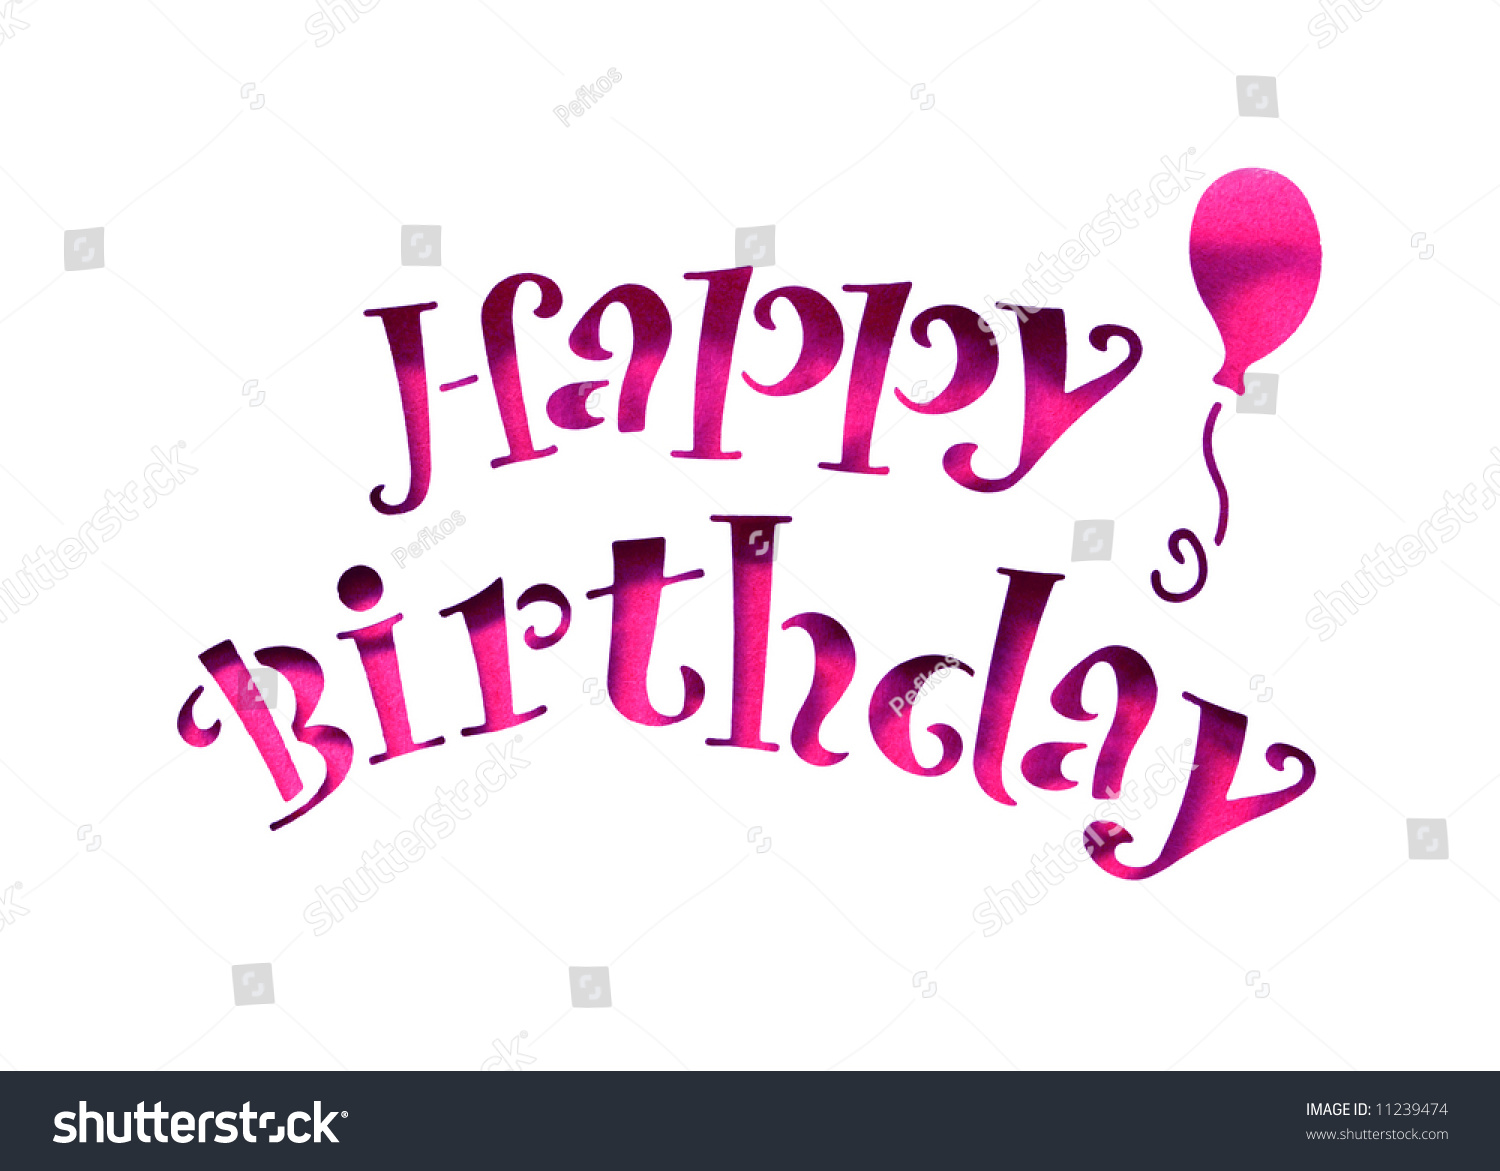 happy birthday letters images happy birthday letters stencil cut out stock photo 17589 | stock photo happy birthday letters stencil cut out 11239474